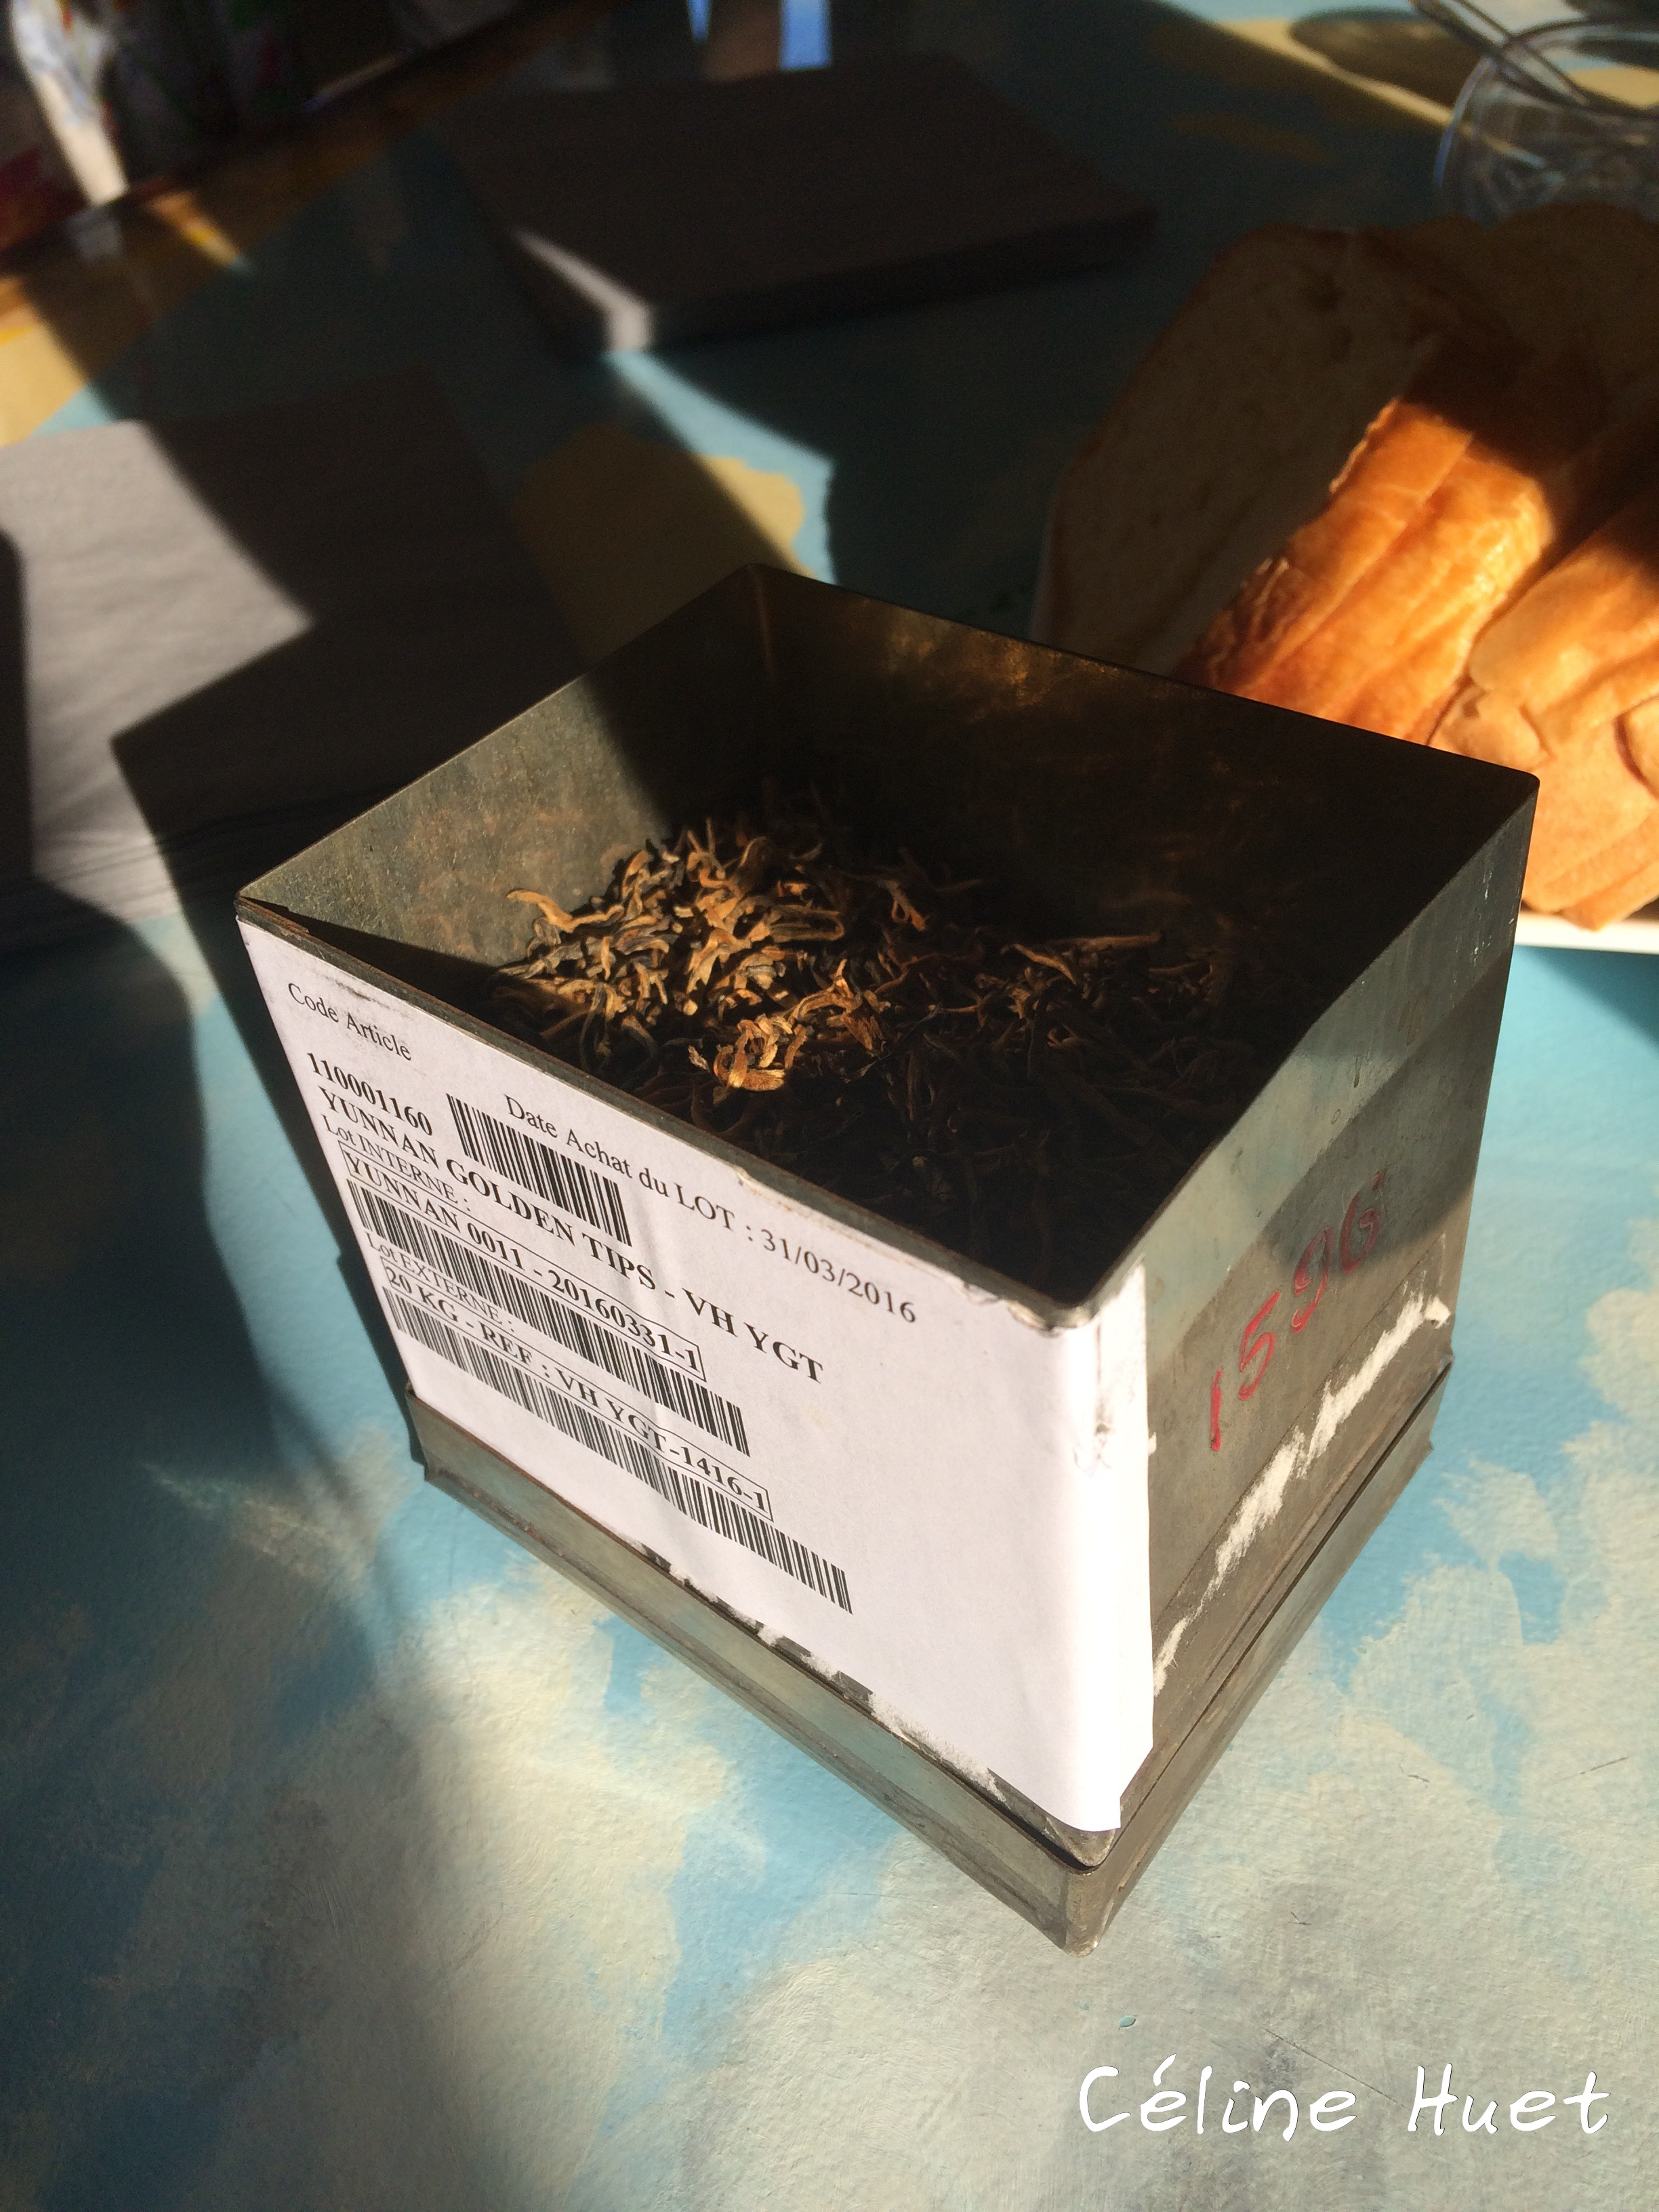 Yunnan Golden Tips Dammann Frères